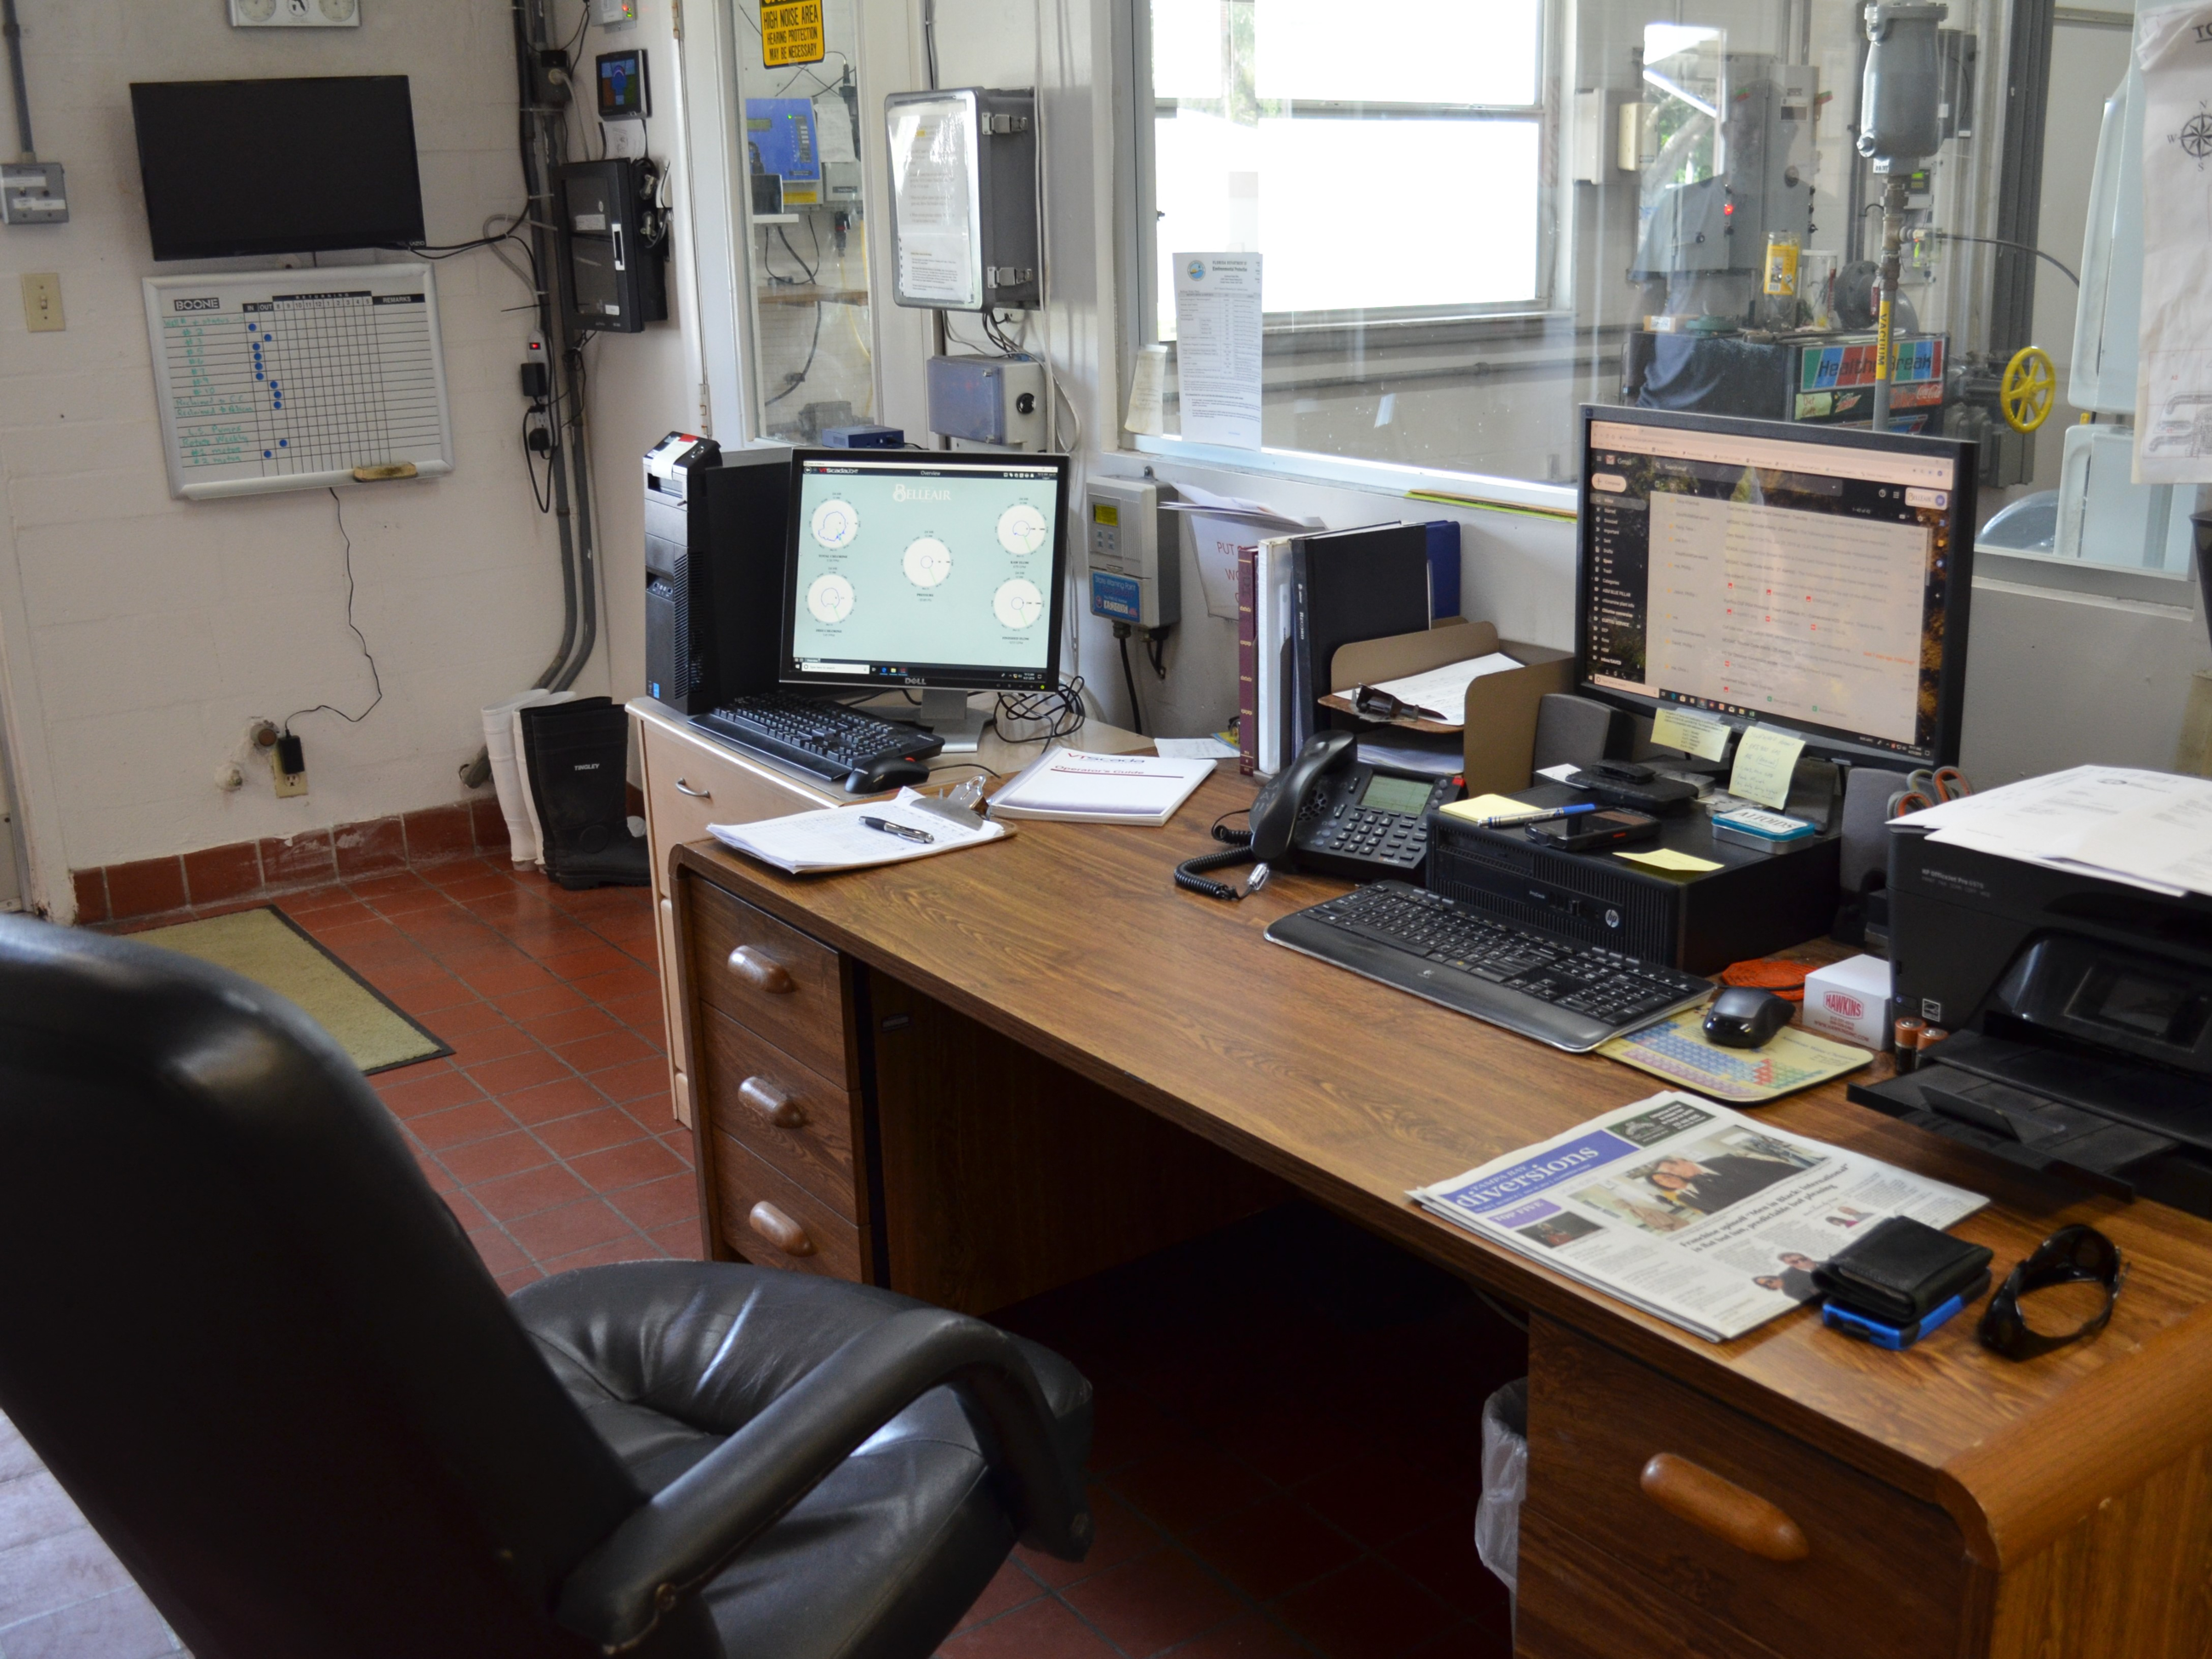 Inside the water plant, an office space for monitoring water treatment from computer systems.